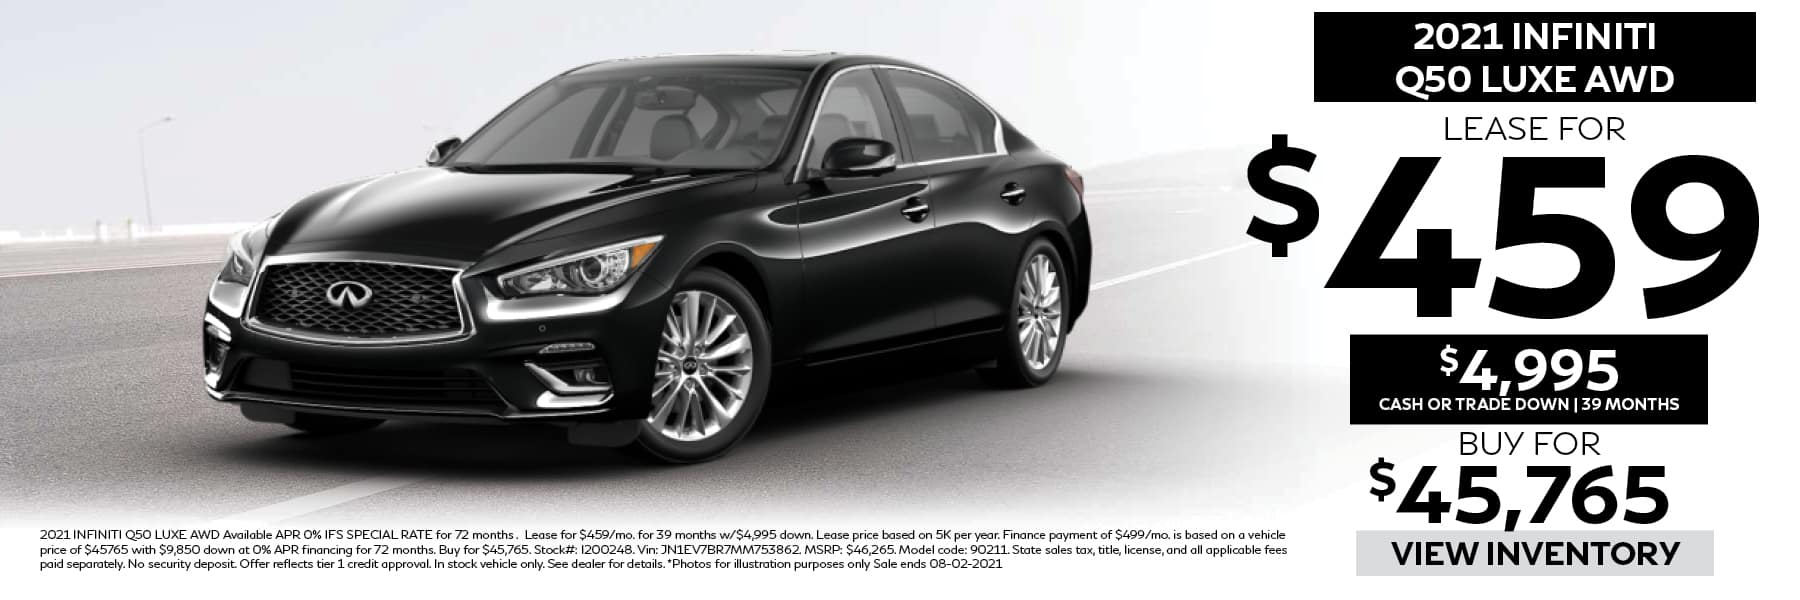 2021 INFINITI Q50 LUXE Lease for $459 per Month with $4,995 Cash or Trade Down for 39 Months